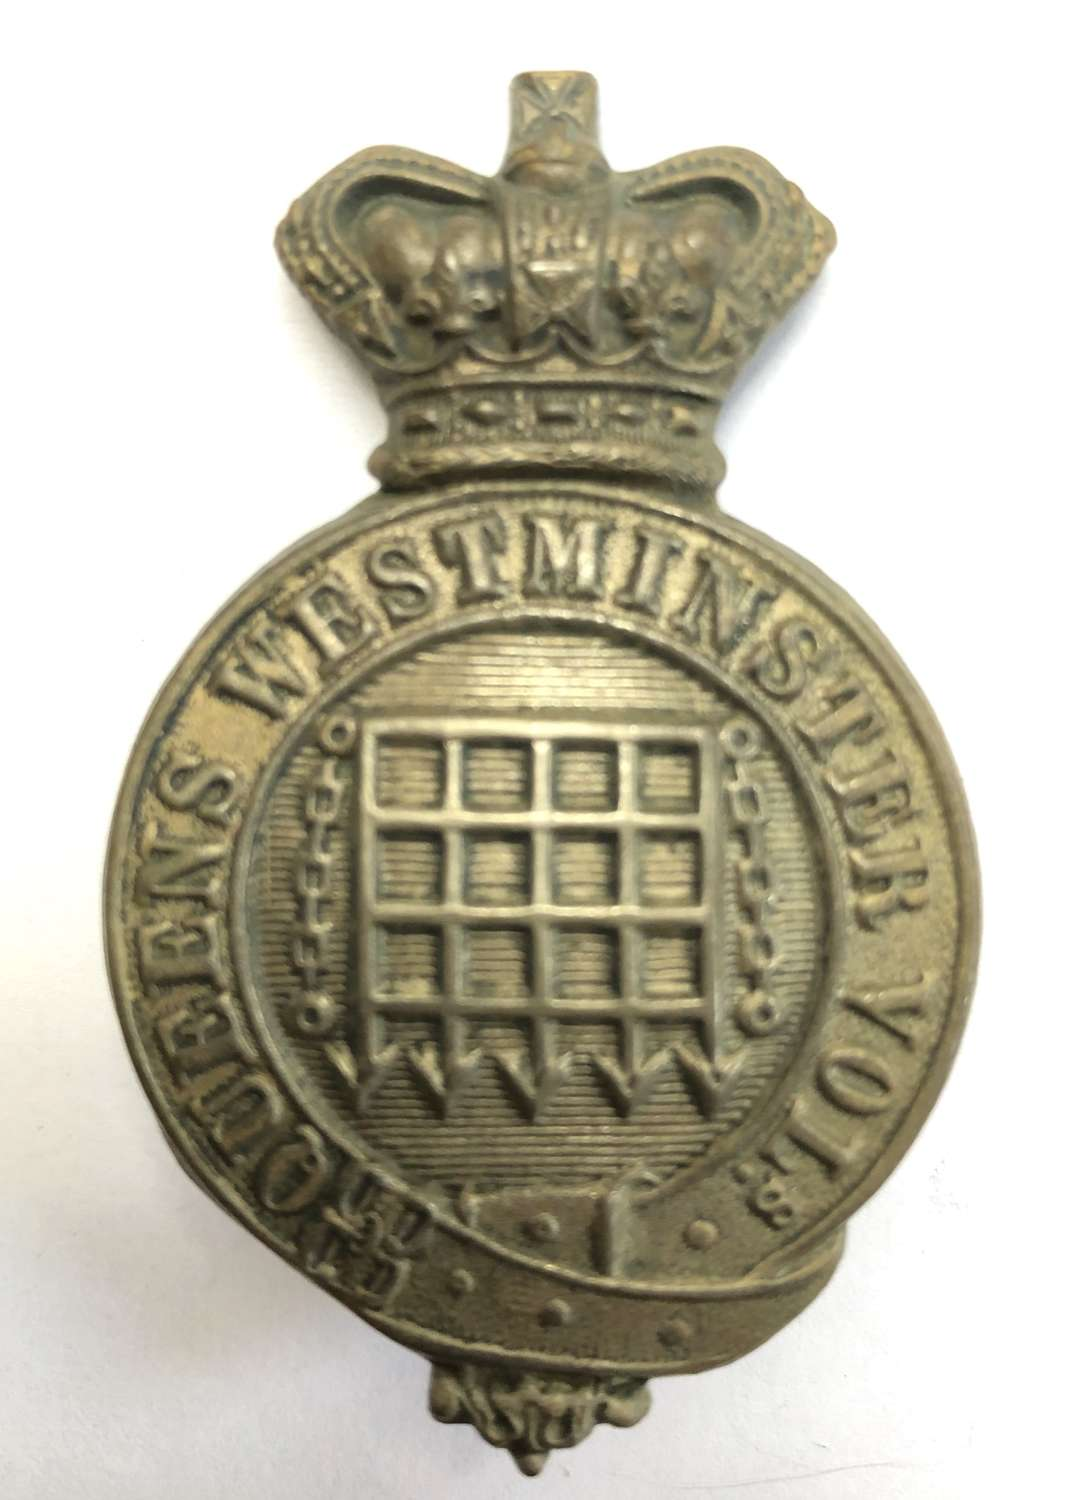 Queen's Westminster Volunteers Victorian glengarry badge circa 1878